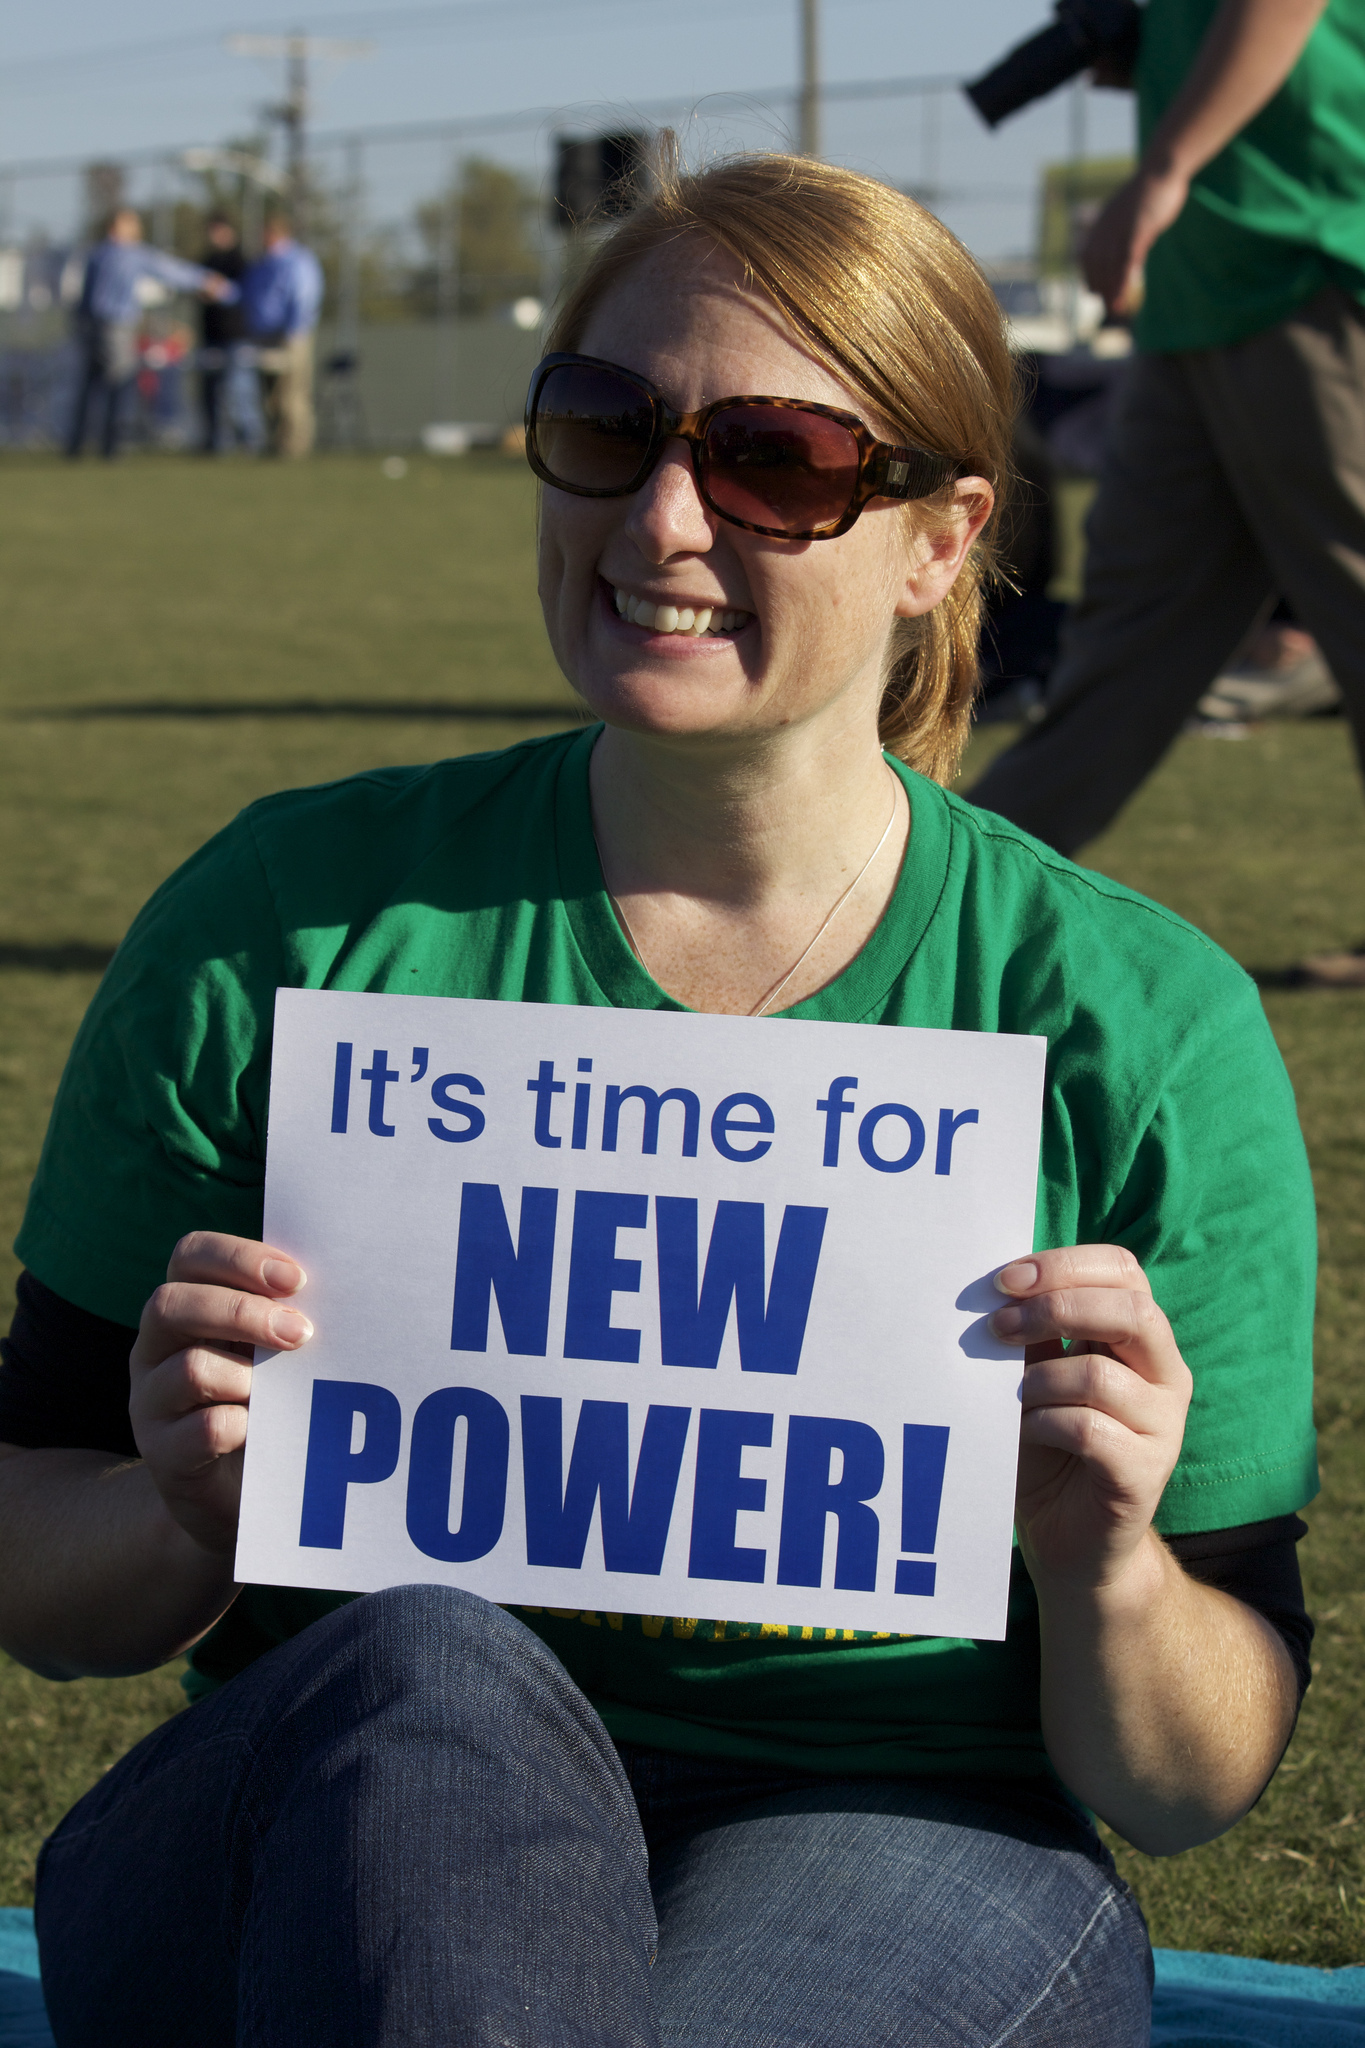 What is New Power? - New Power is all Kentuckians working together for a brighter future. Today Kentuckians have our best chance in generations to build a new power economy and a new power democracy – for all of us.New Power means new jobs for our workers and our children. New Power means new, affordable energy for our homes and industry without destroying our communities, land, air, water, or health. New Power means all Kentuckians informed and participating in the decisions that shape our lives and our communities. New Power means elected officials who are accountable to all their constituents.